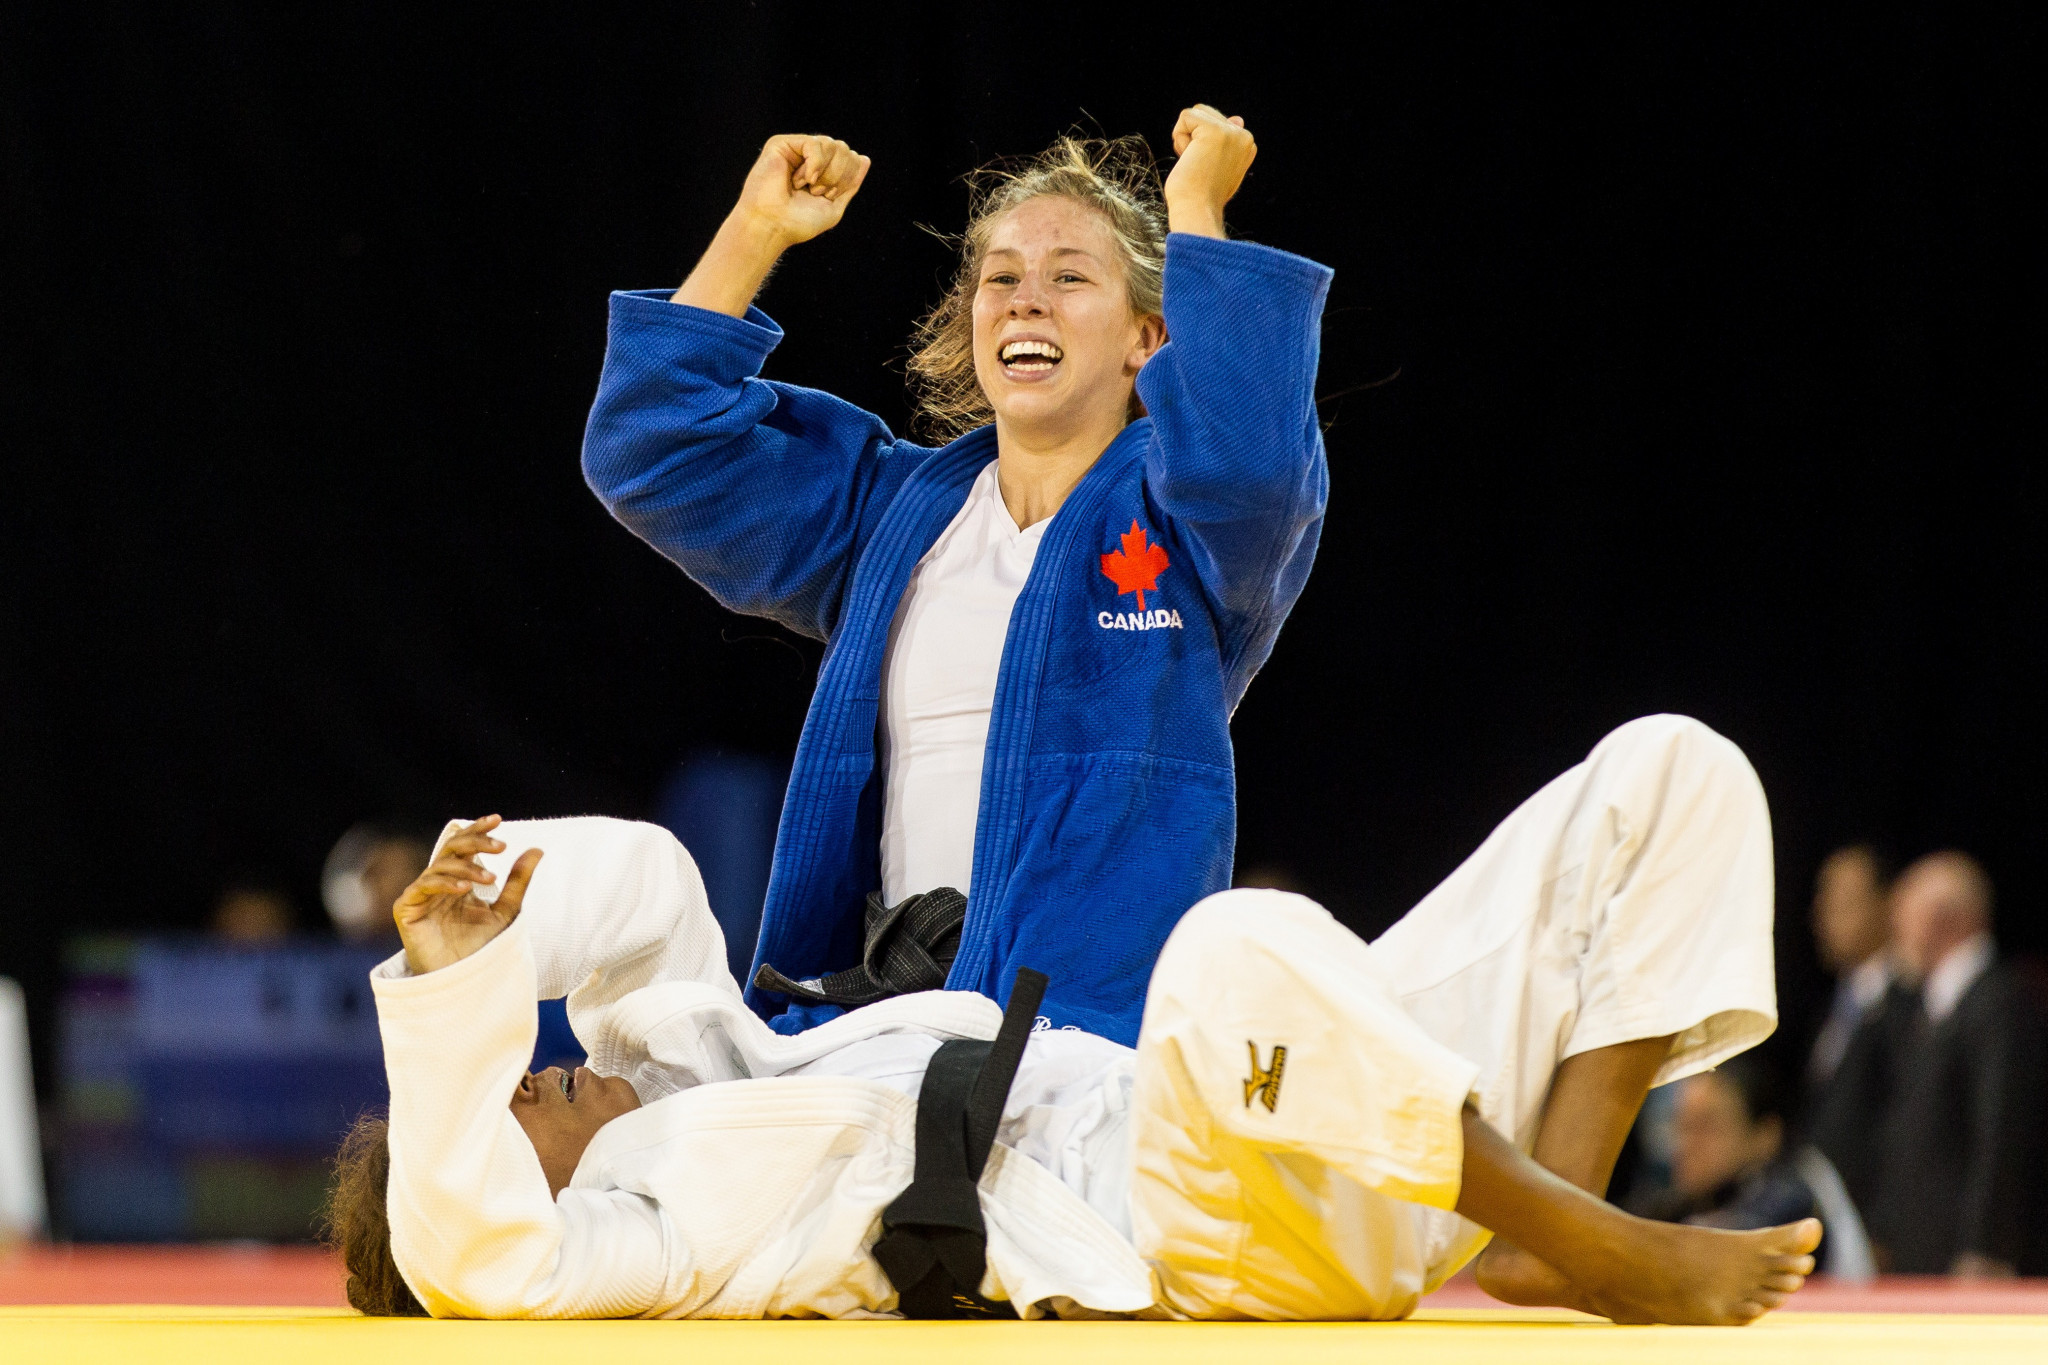 Canadian judokas have returned to training amid the coronavirus pandemic ©Getty Images